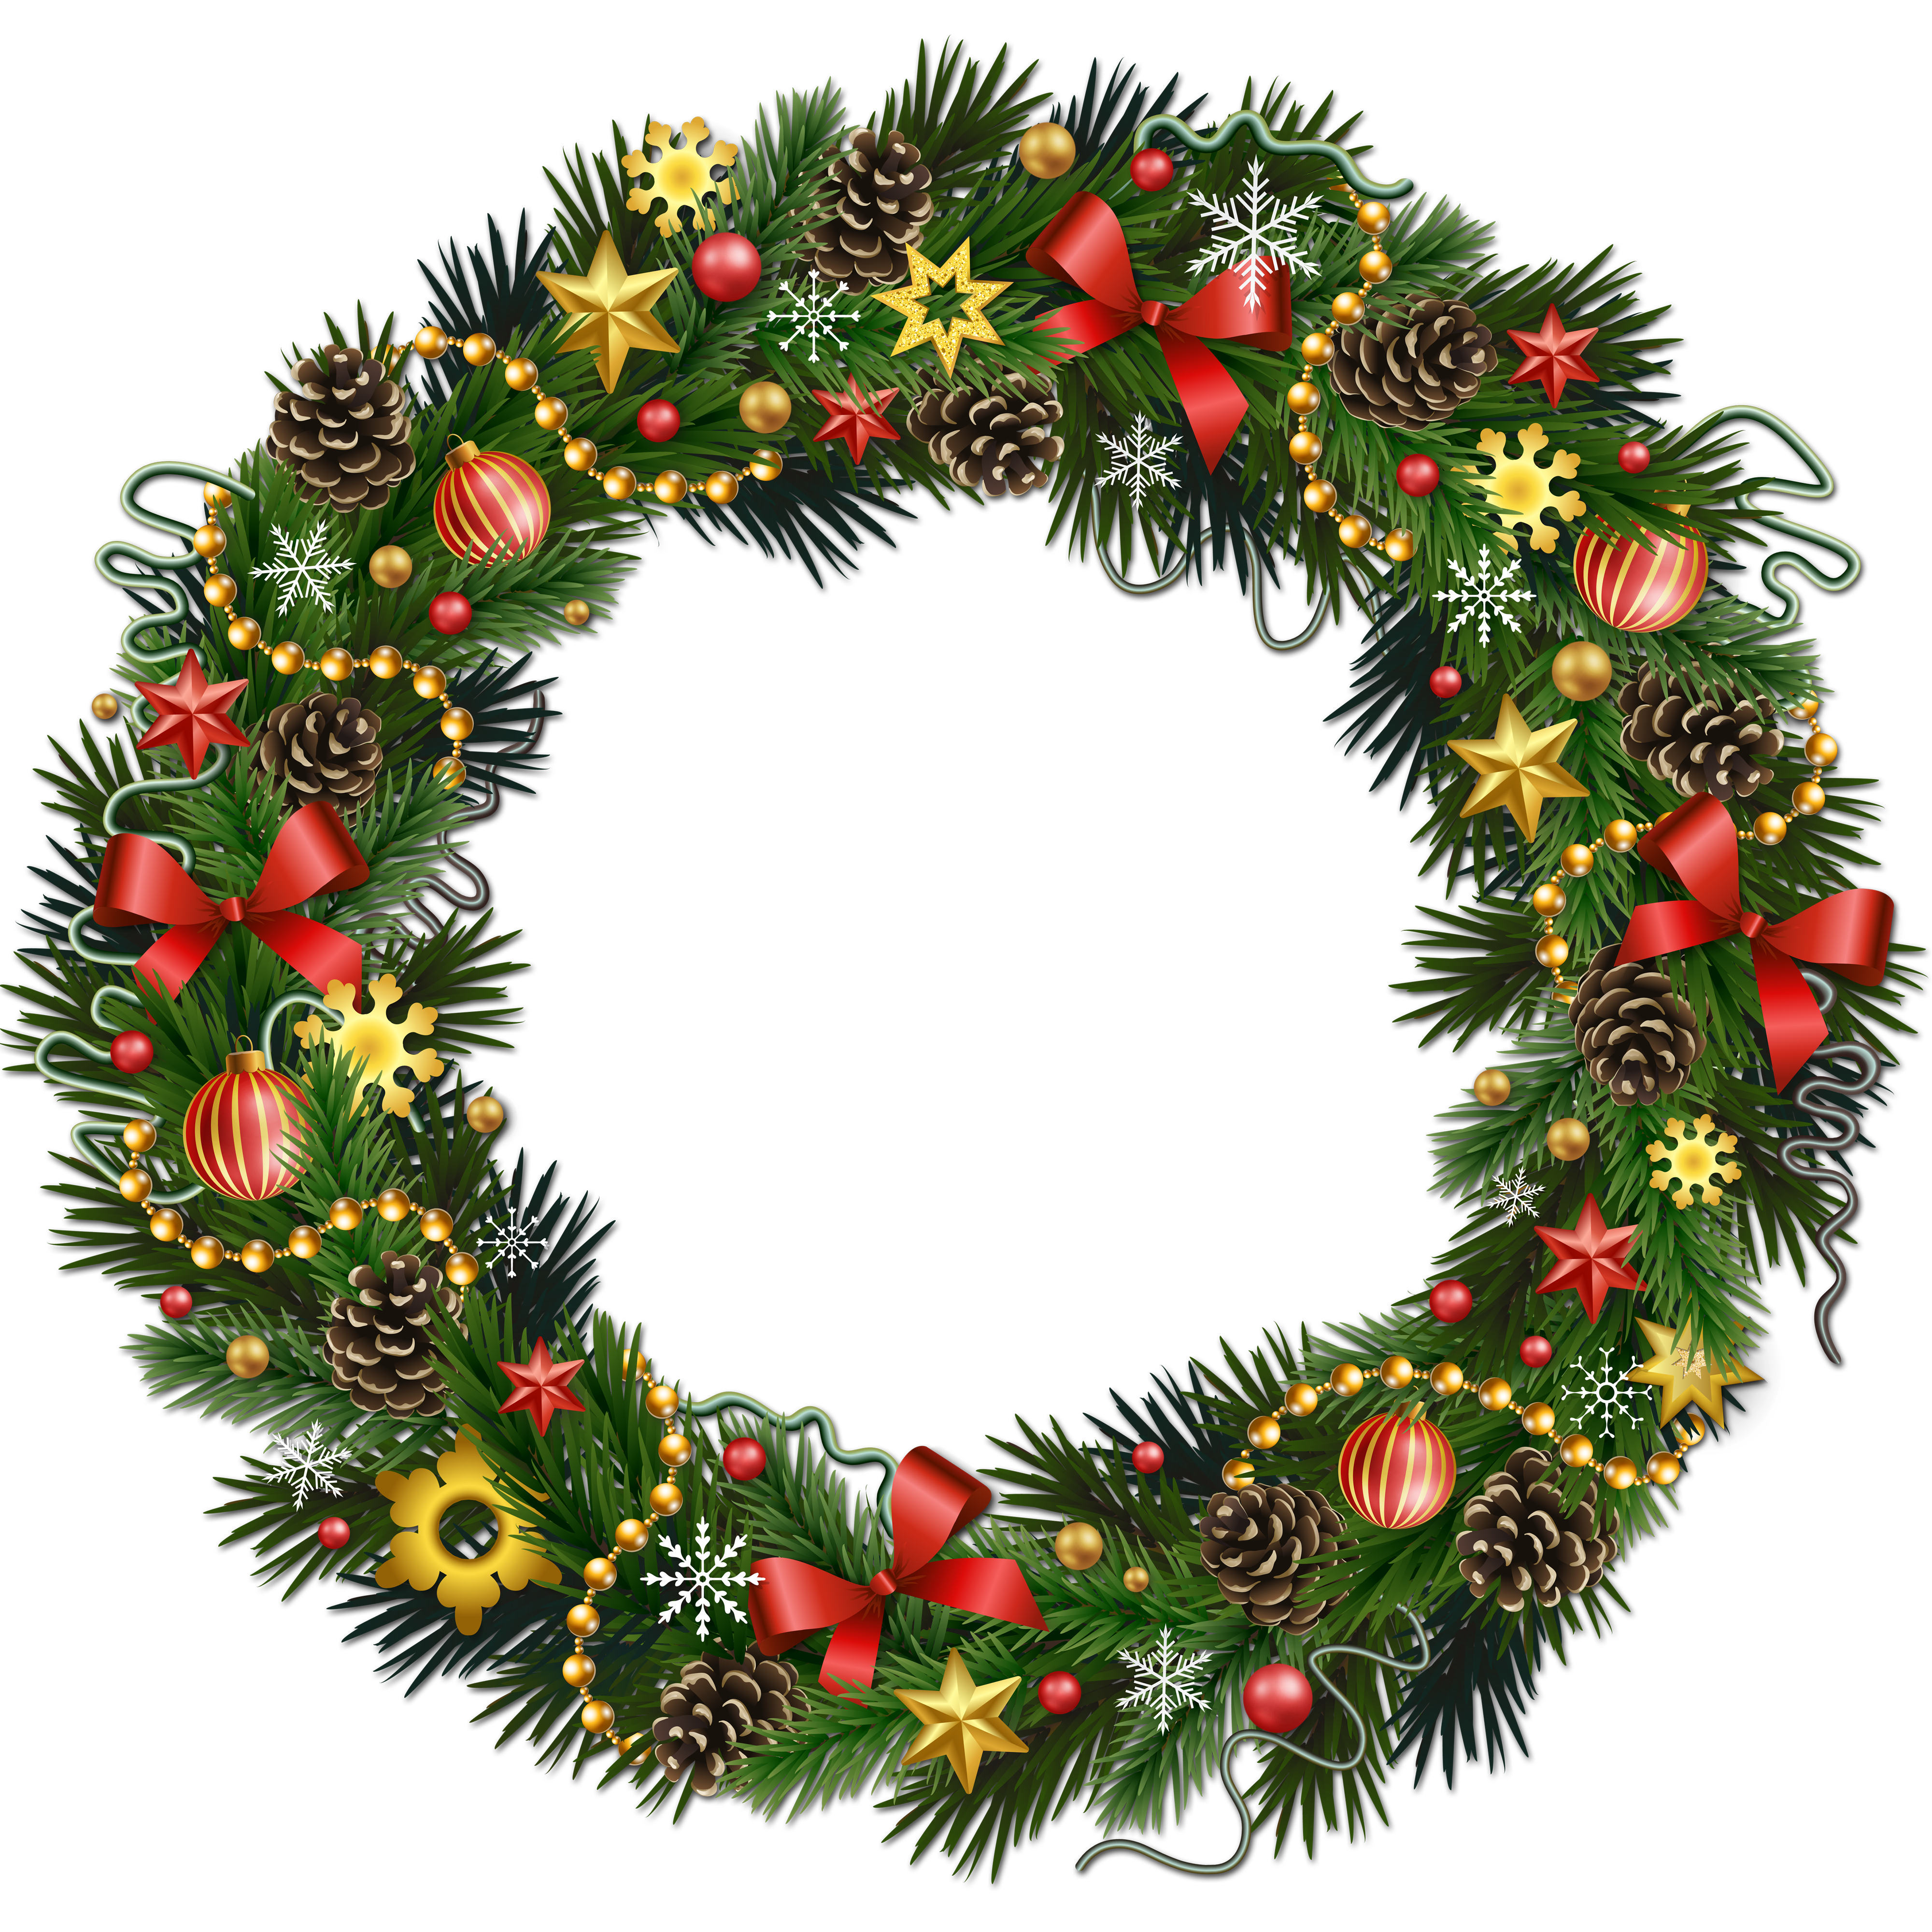 Wreath clipart transparent background Christmas wreath pinecone clipart holly